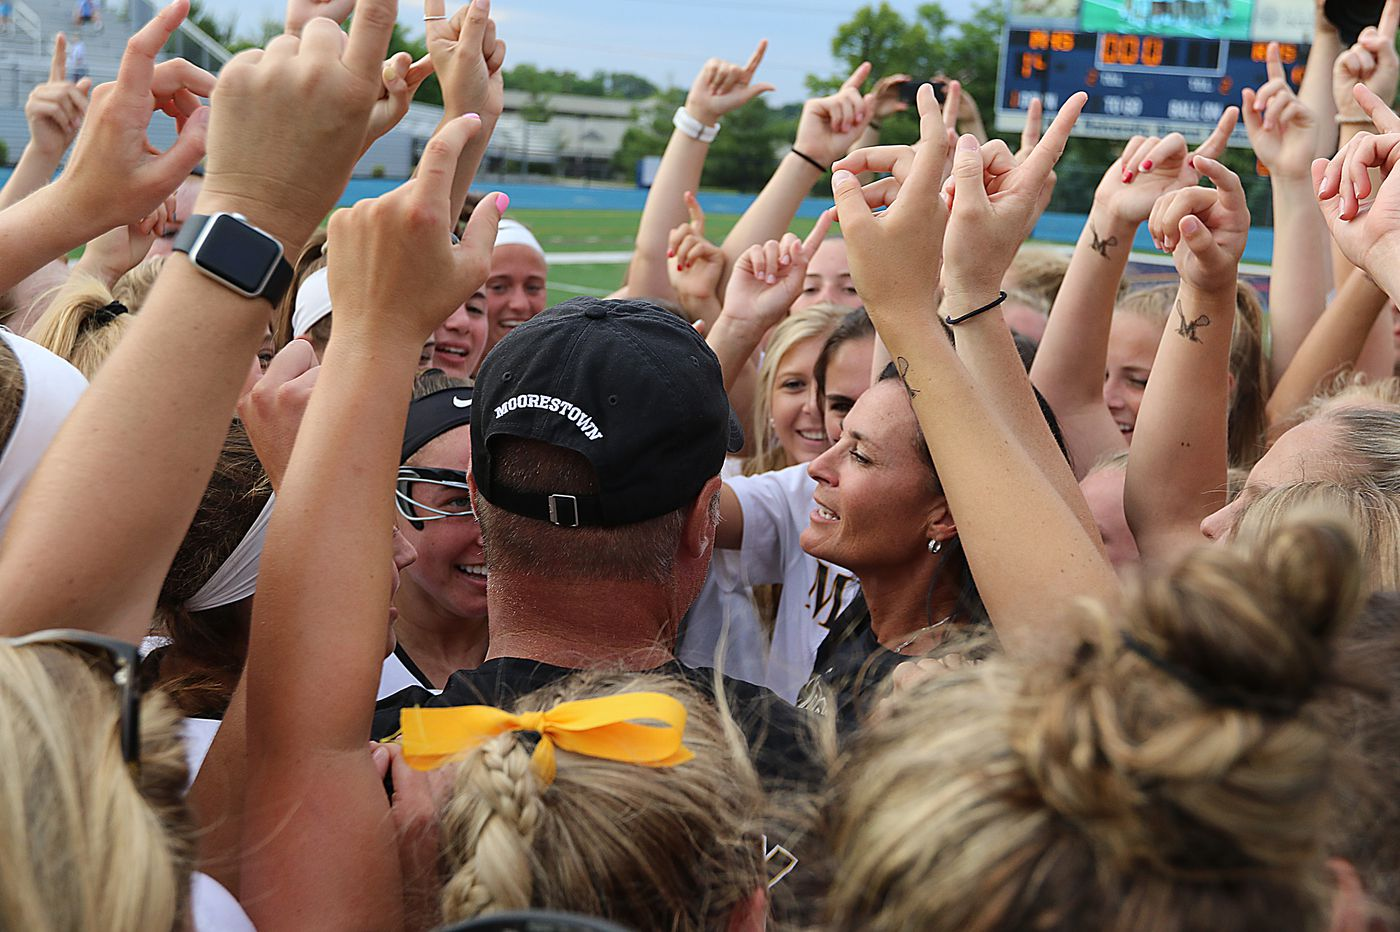 Moorestown girls' lacrosse coach Deanna Knobloch finally hanging it up after 27 years and 580 wins